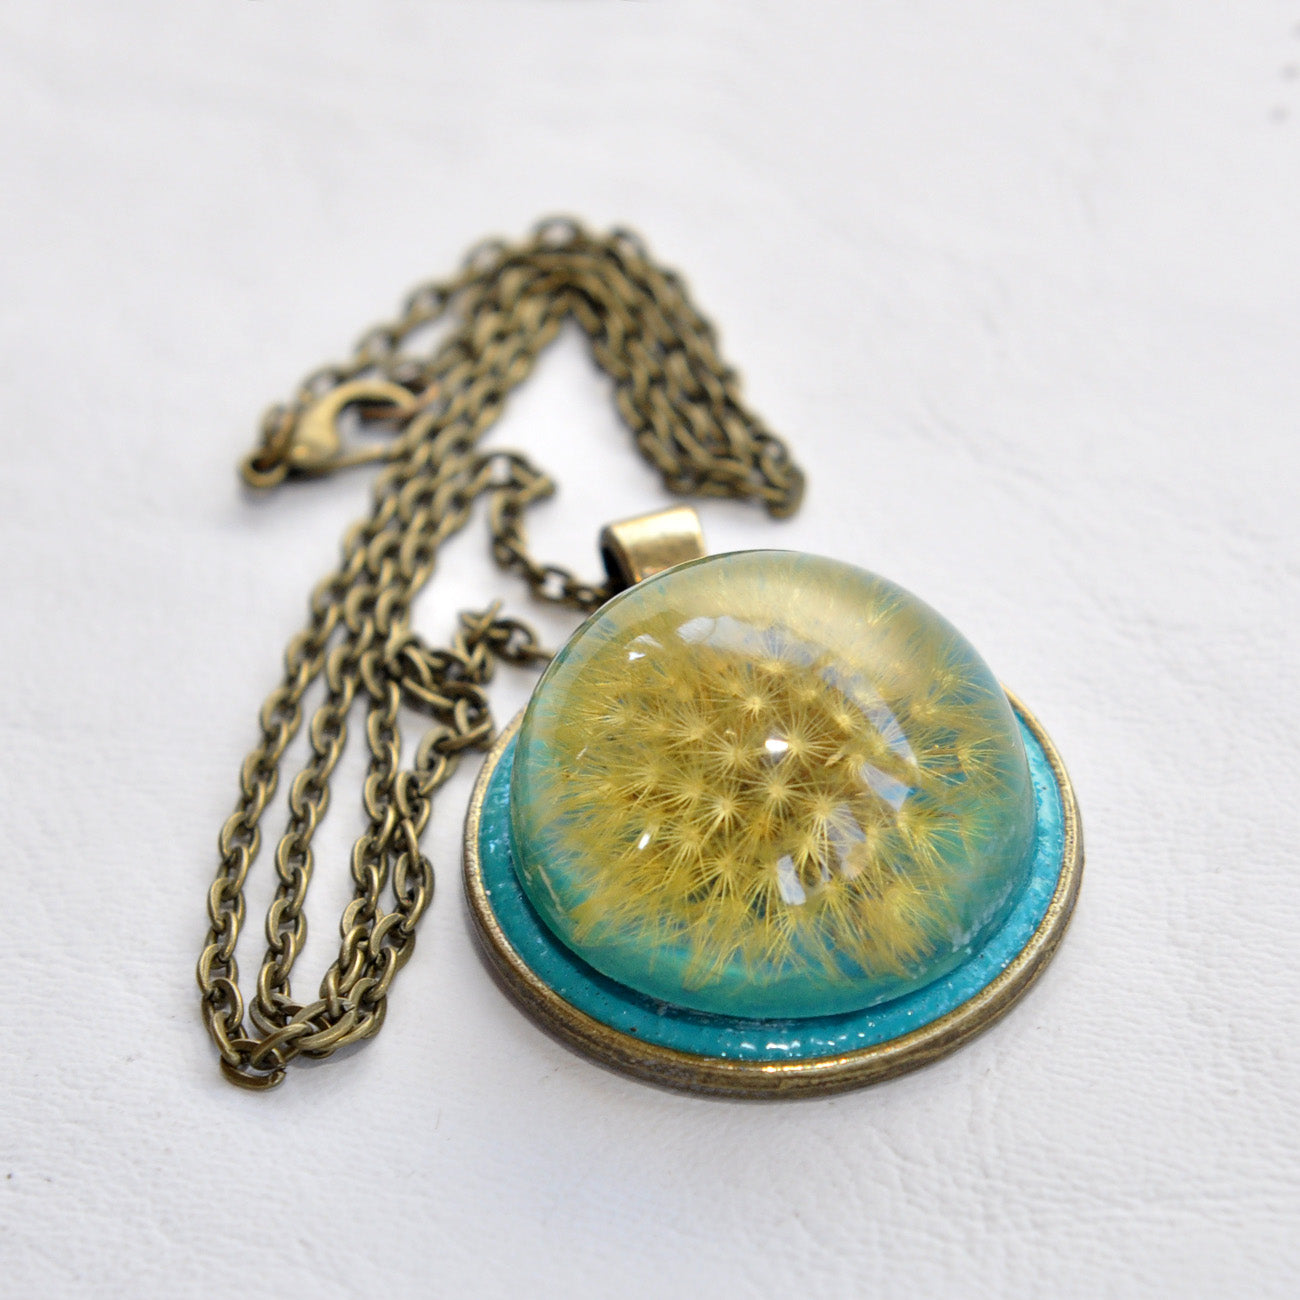 Turquoise, Cute, A Real Dandelion Resin Pendant